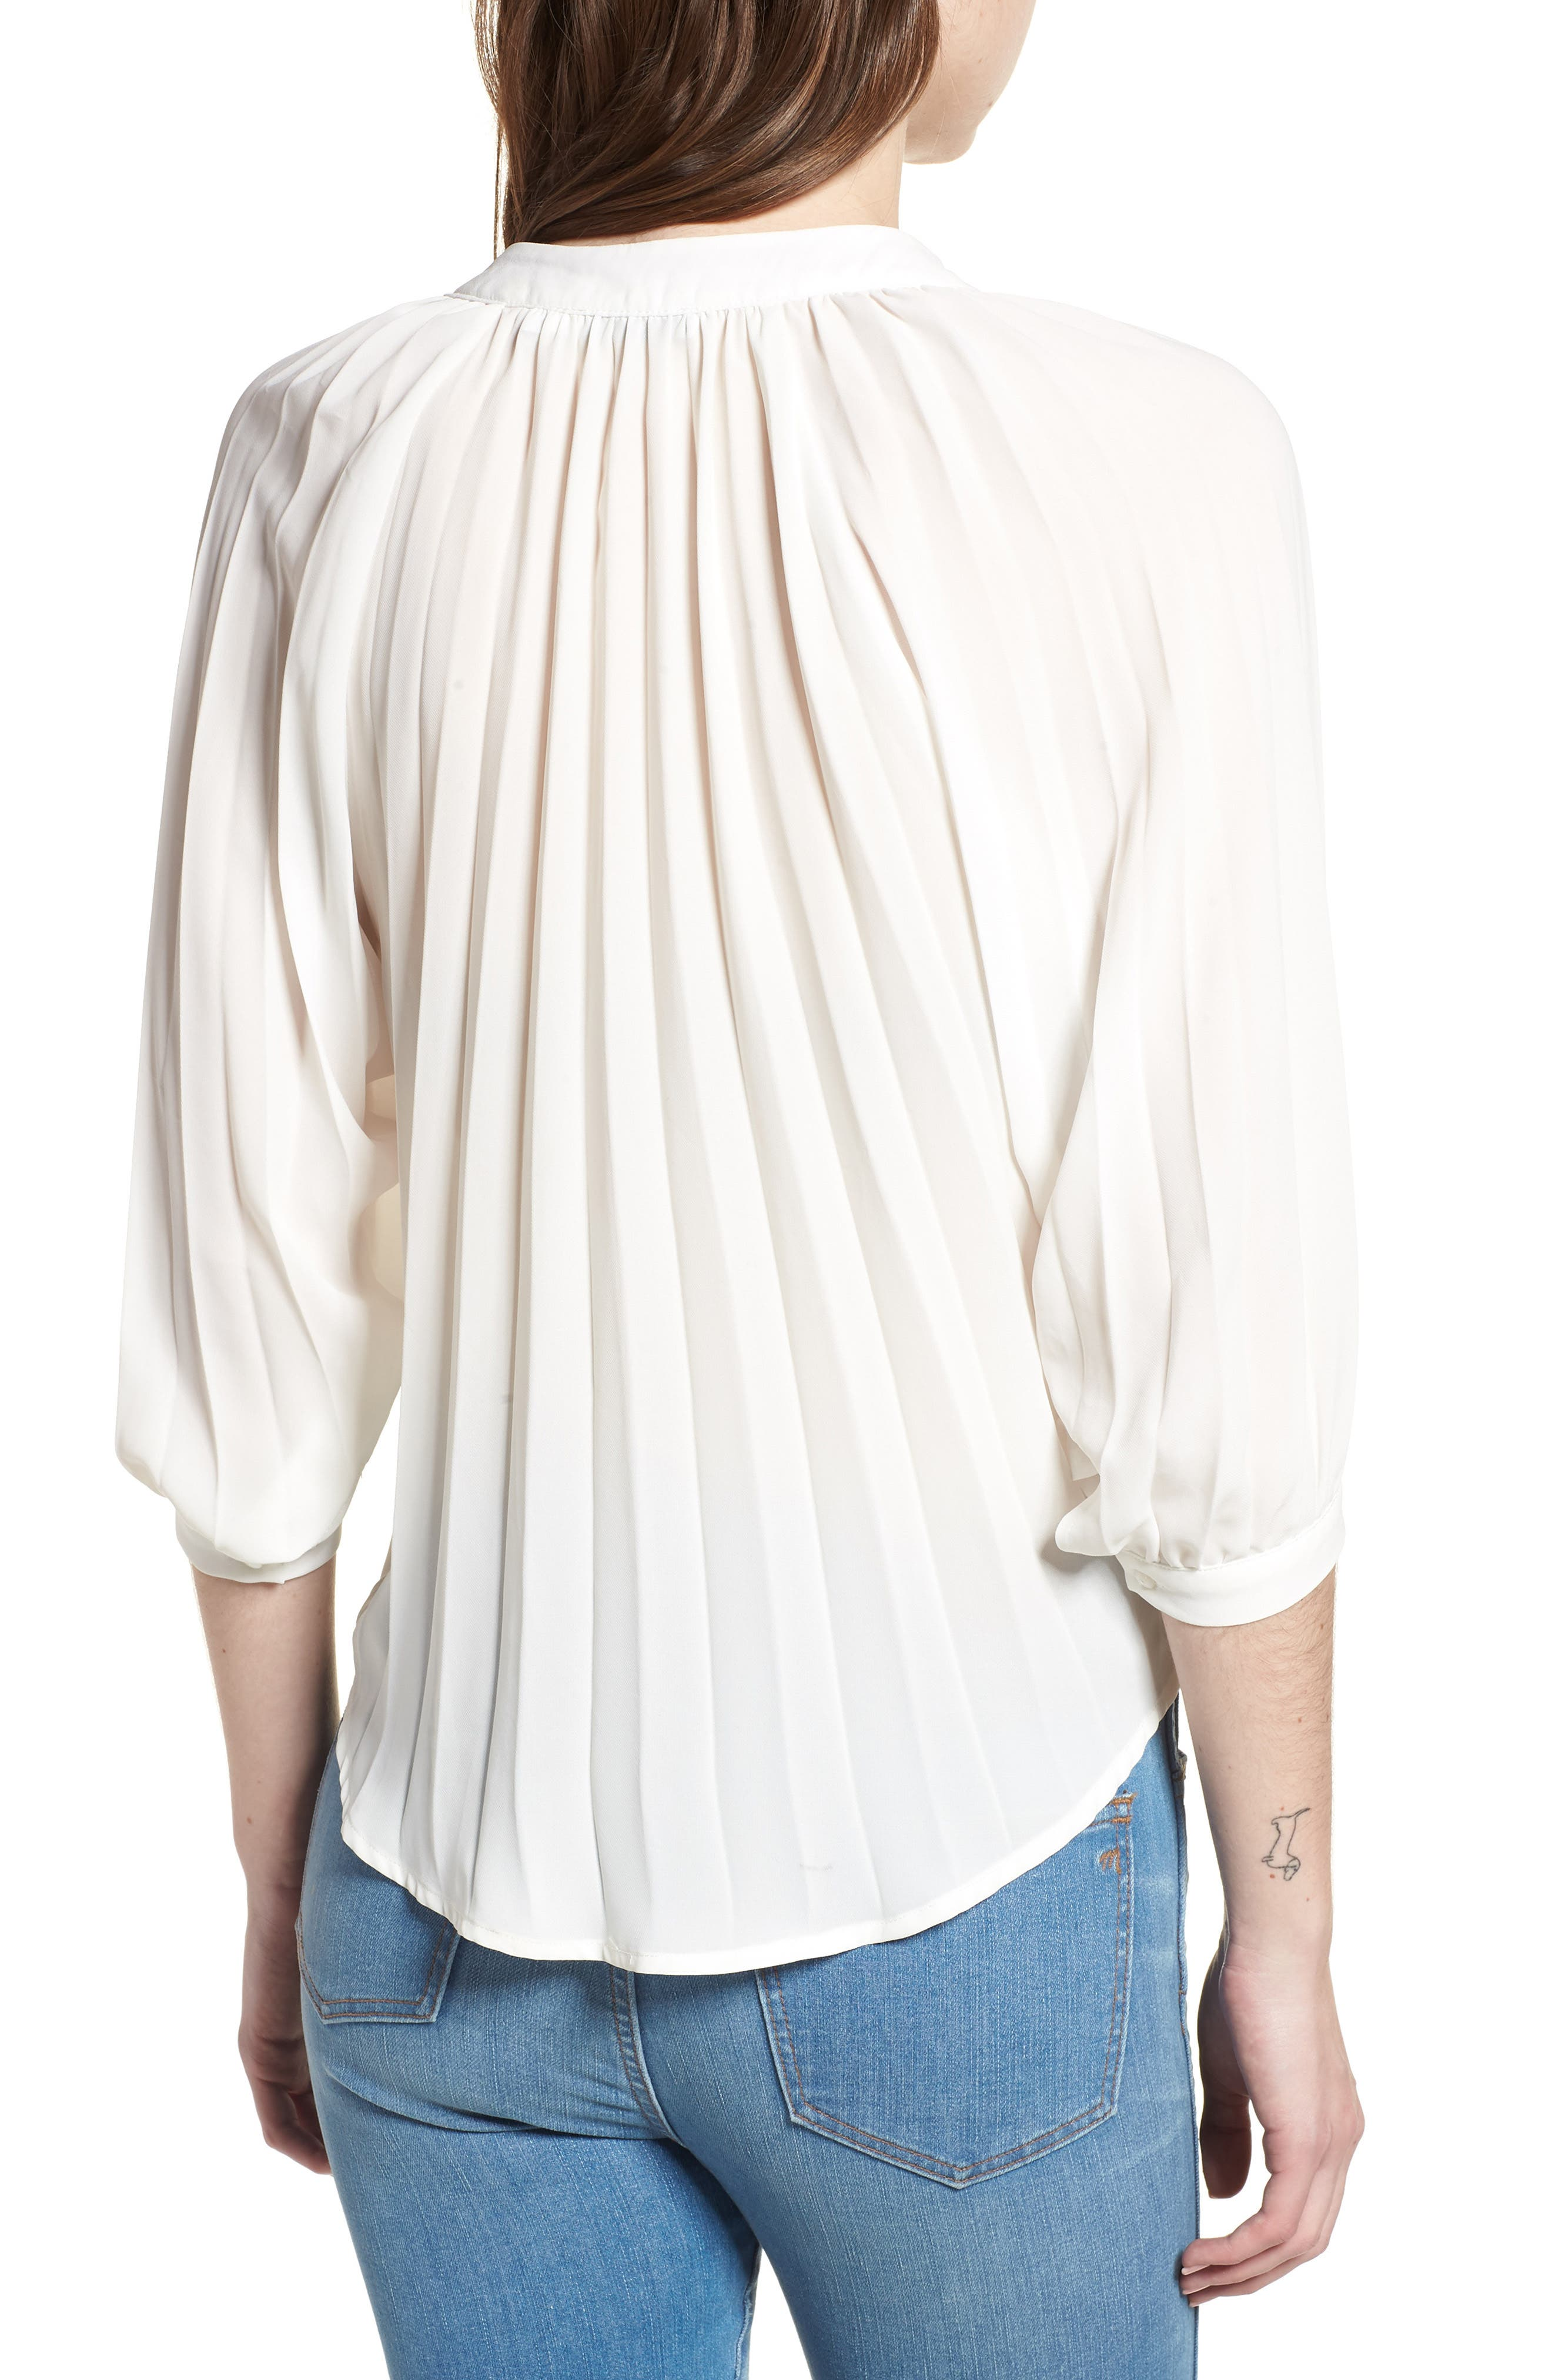 Bishop + Young Pleated Top,                             Alternate thumbnail 2, color,                             WHITE